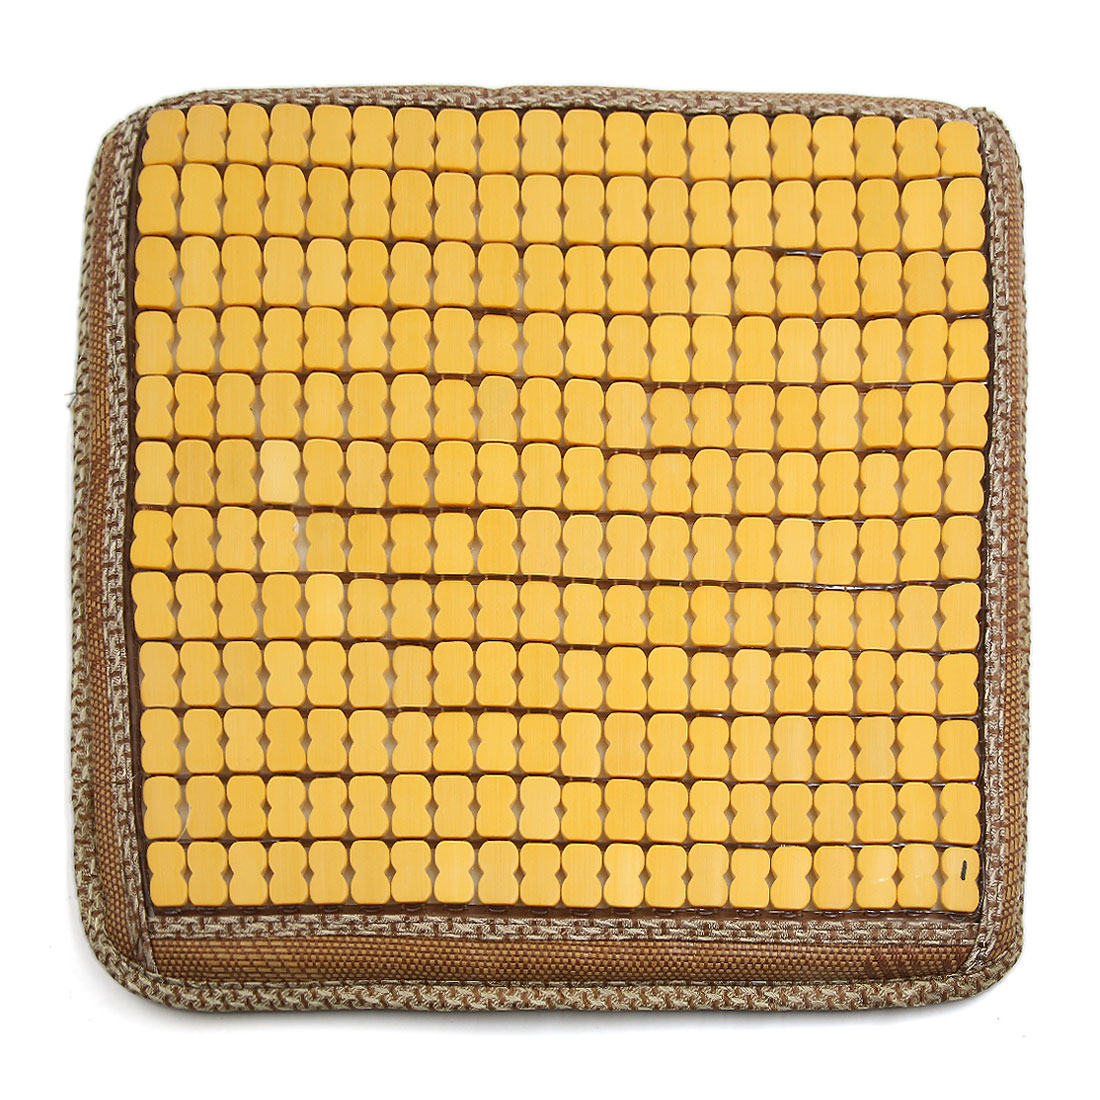 Summer Bamboo Wooden Sponge Comfort Seat Cushion Breathable Cover Mat Beige Yellow